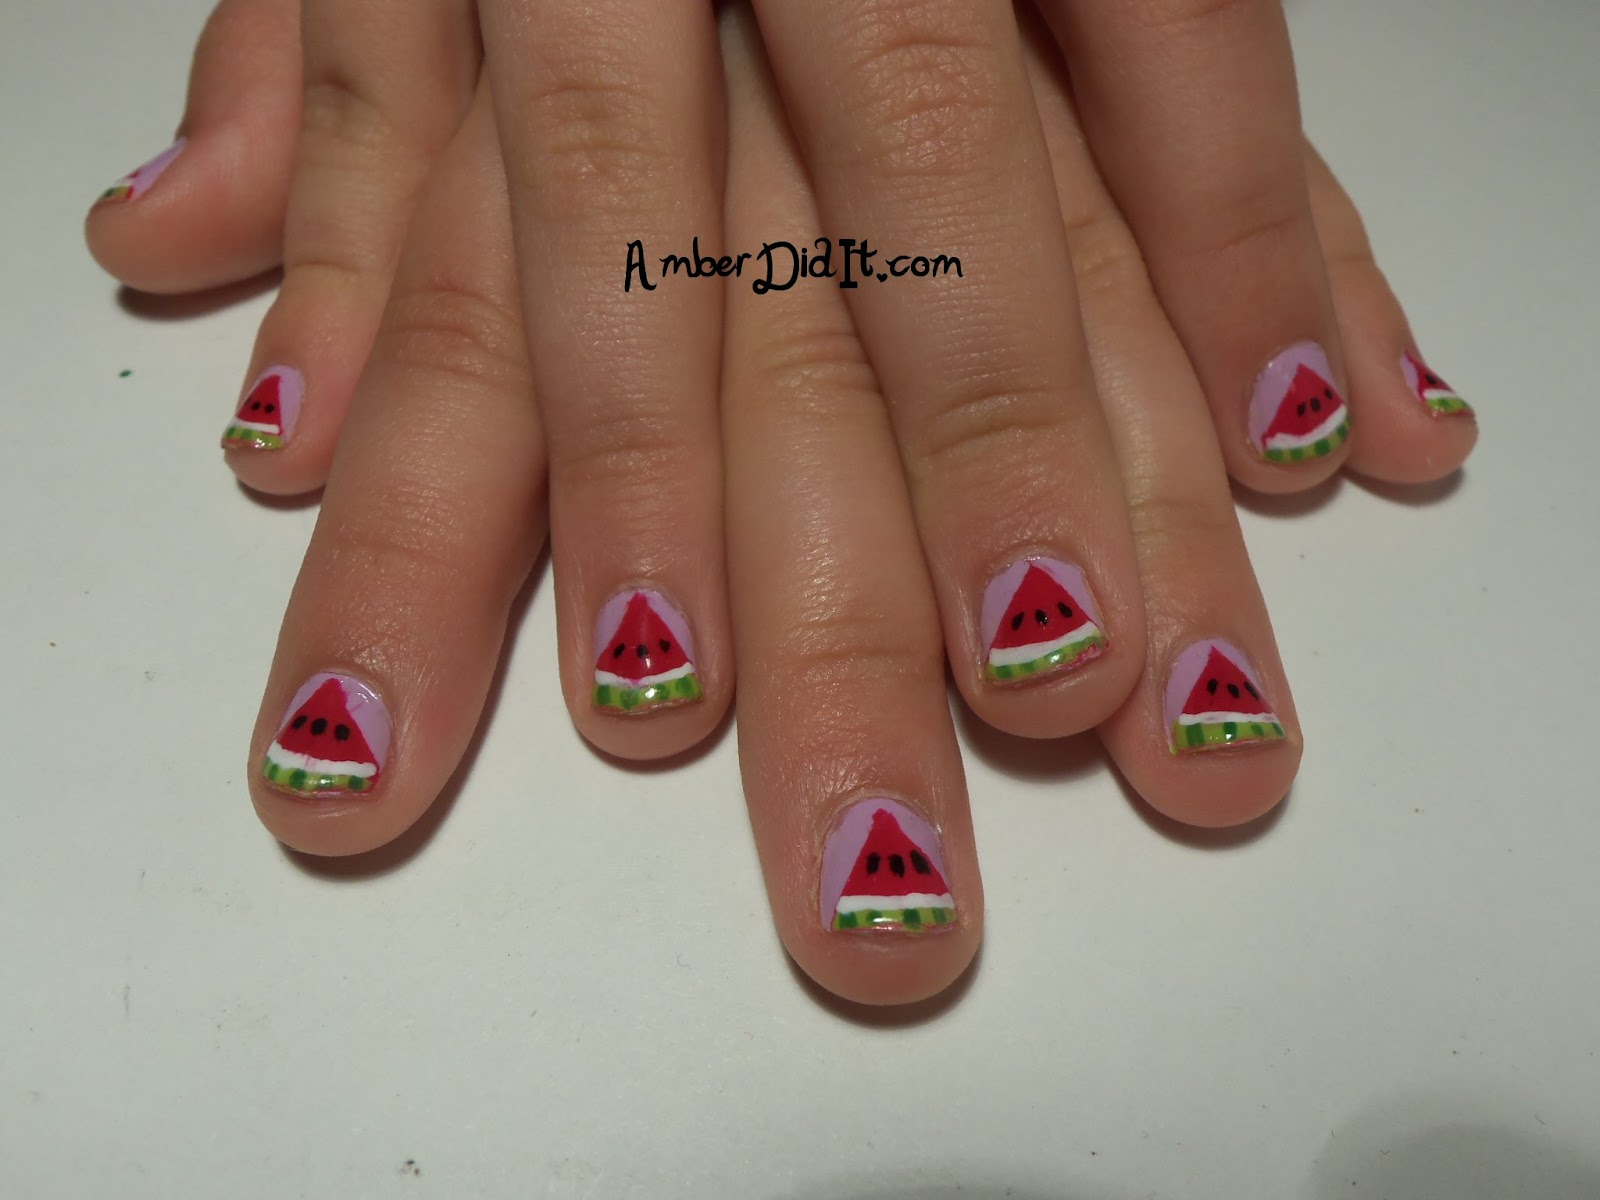 Amber did it!: Mom and Daughter Watermelon Nails